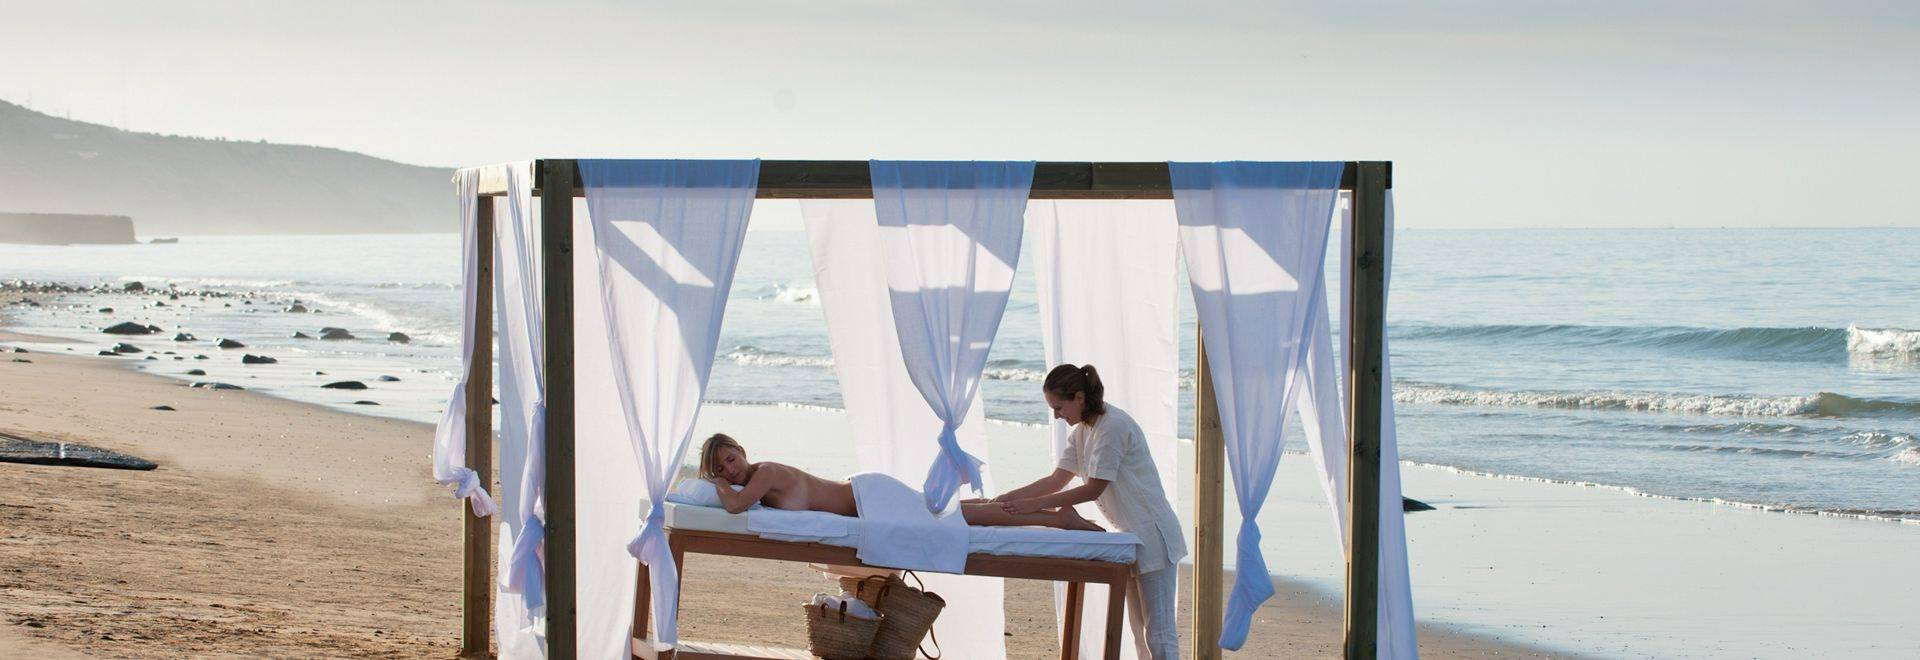 Paradis-Plage-massage-outdoor.jpg